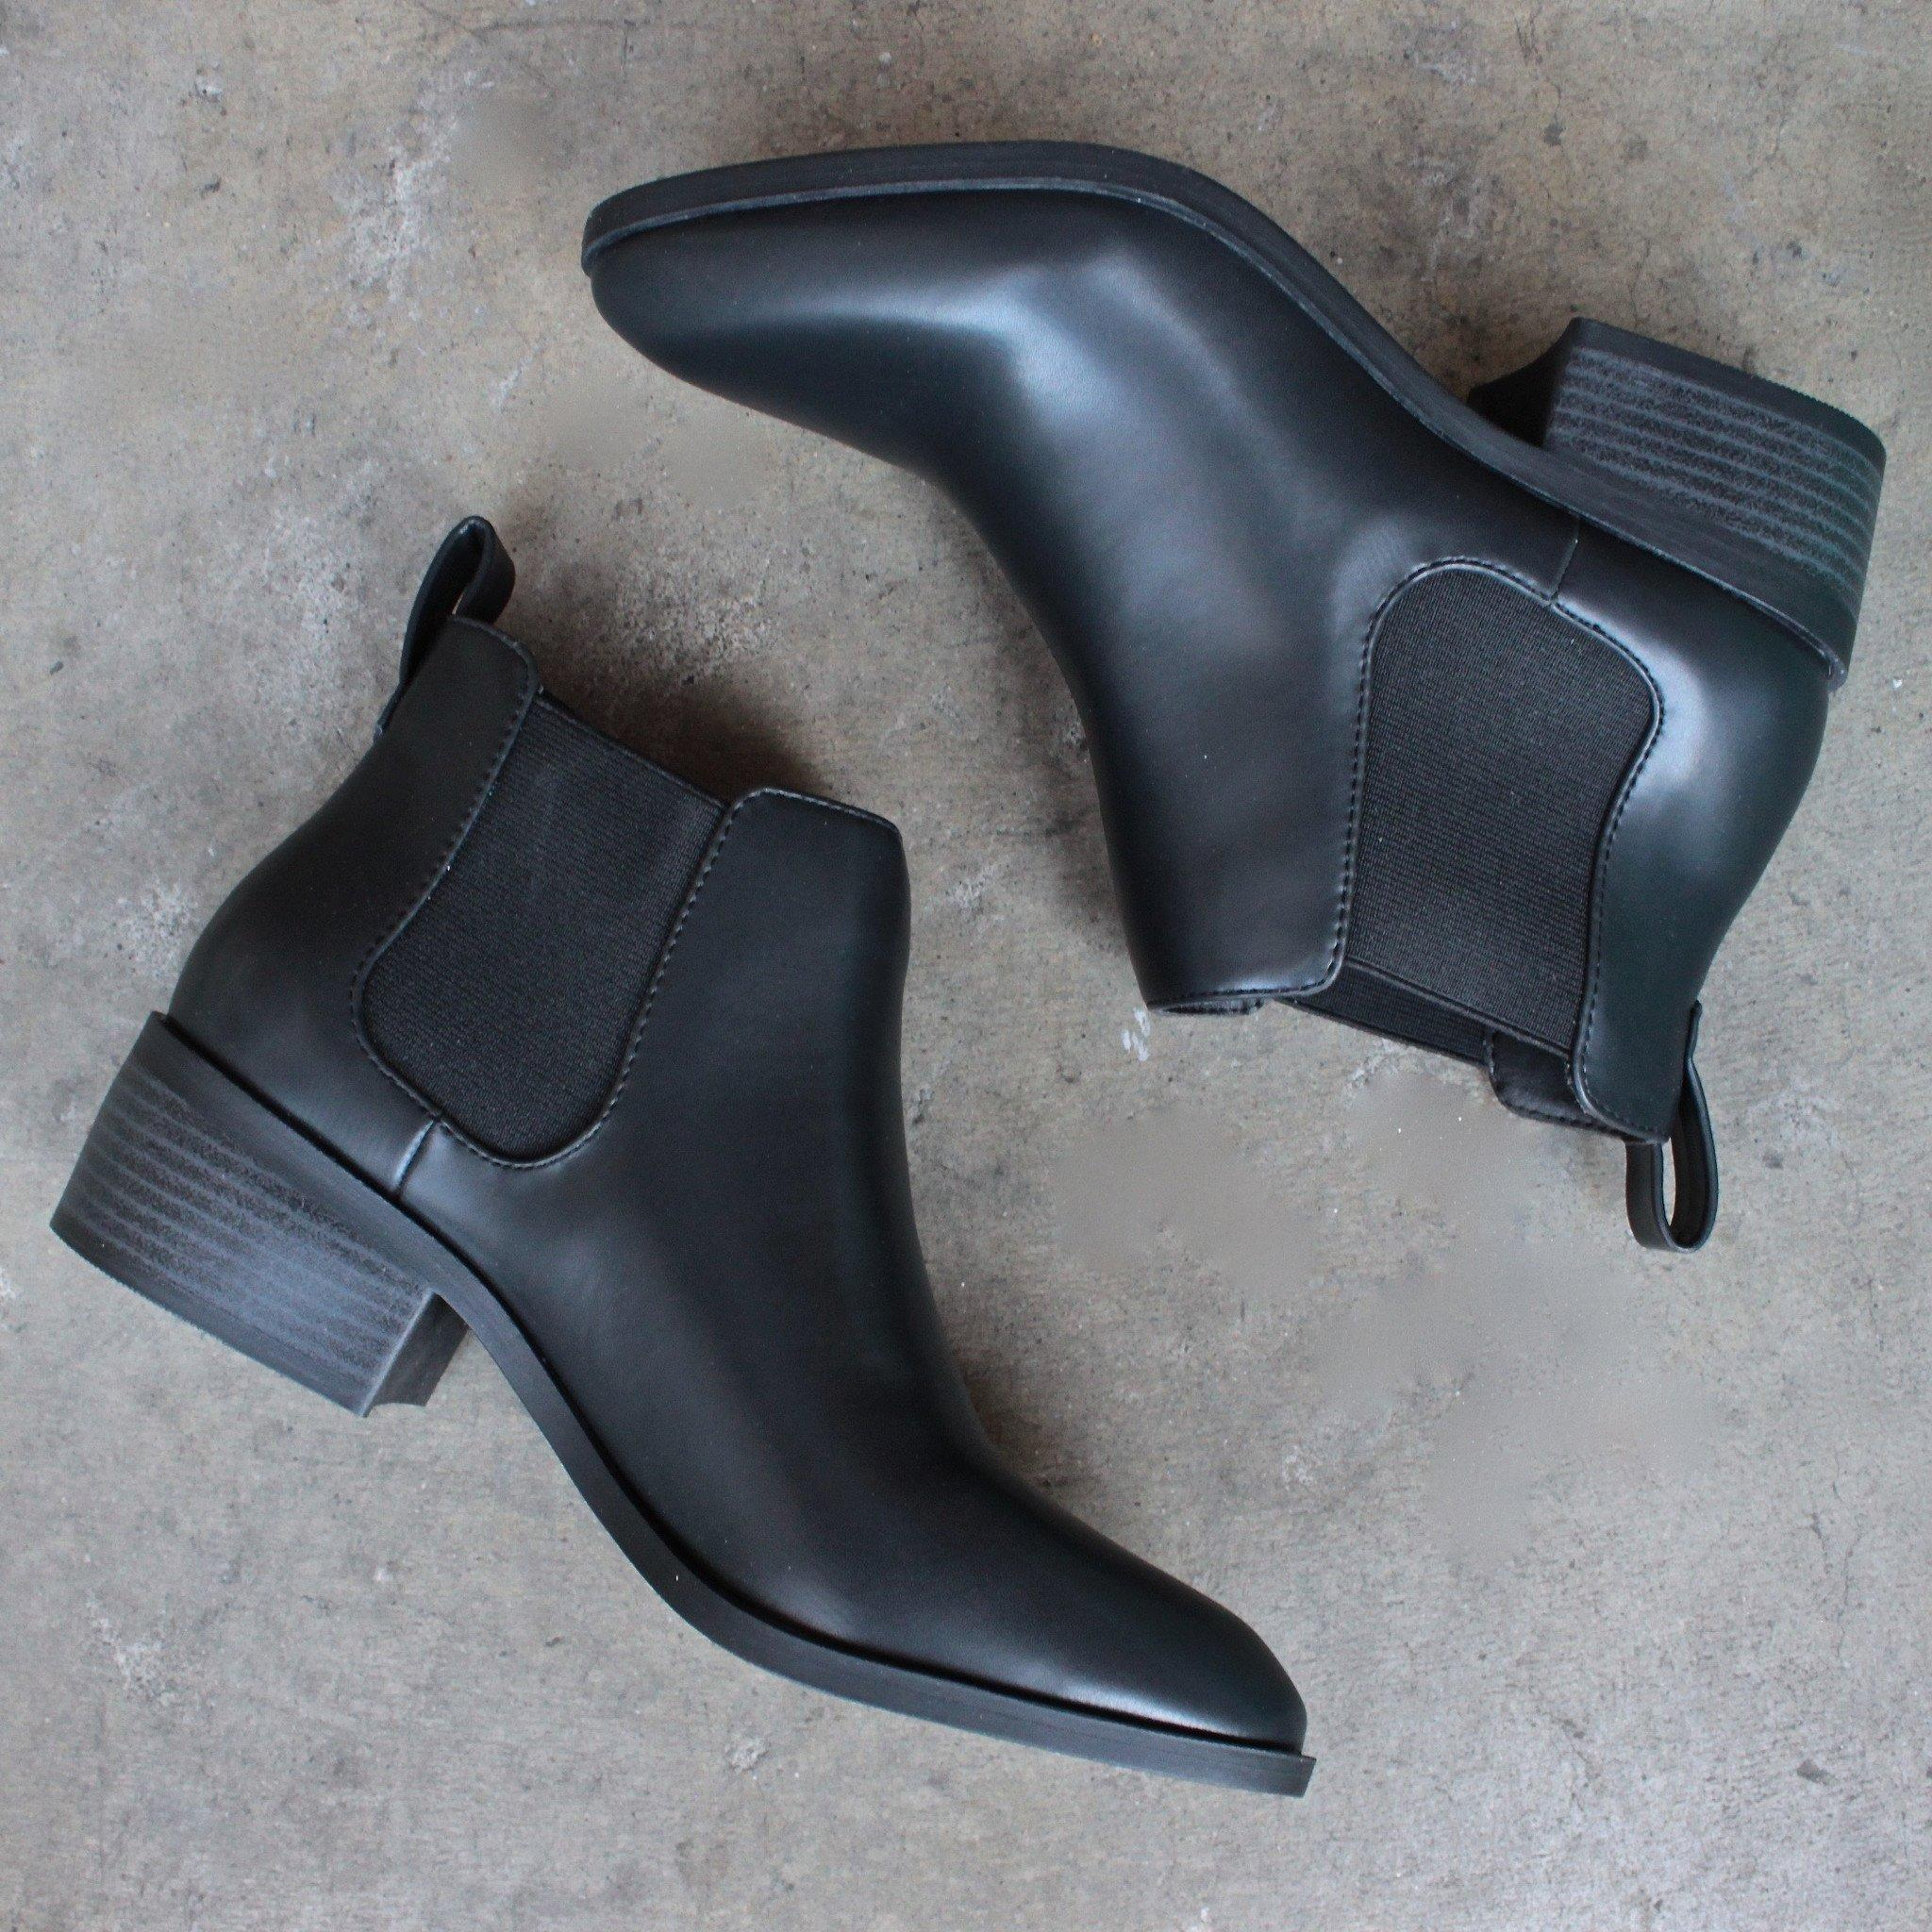 1237c7702cd8 bc footwear modern chelsea ankle boot - from shophearts